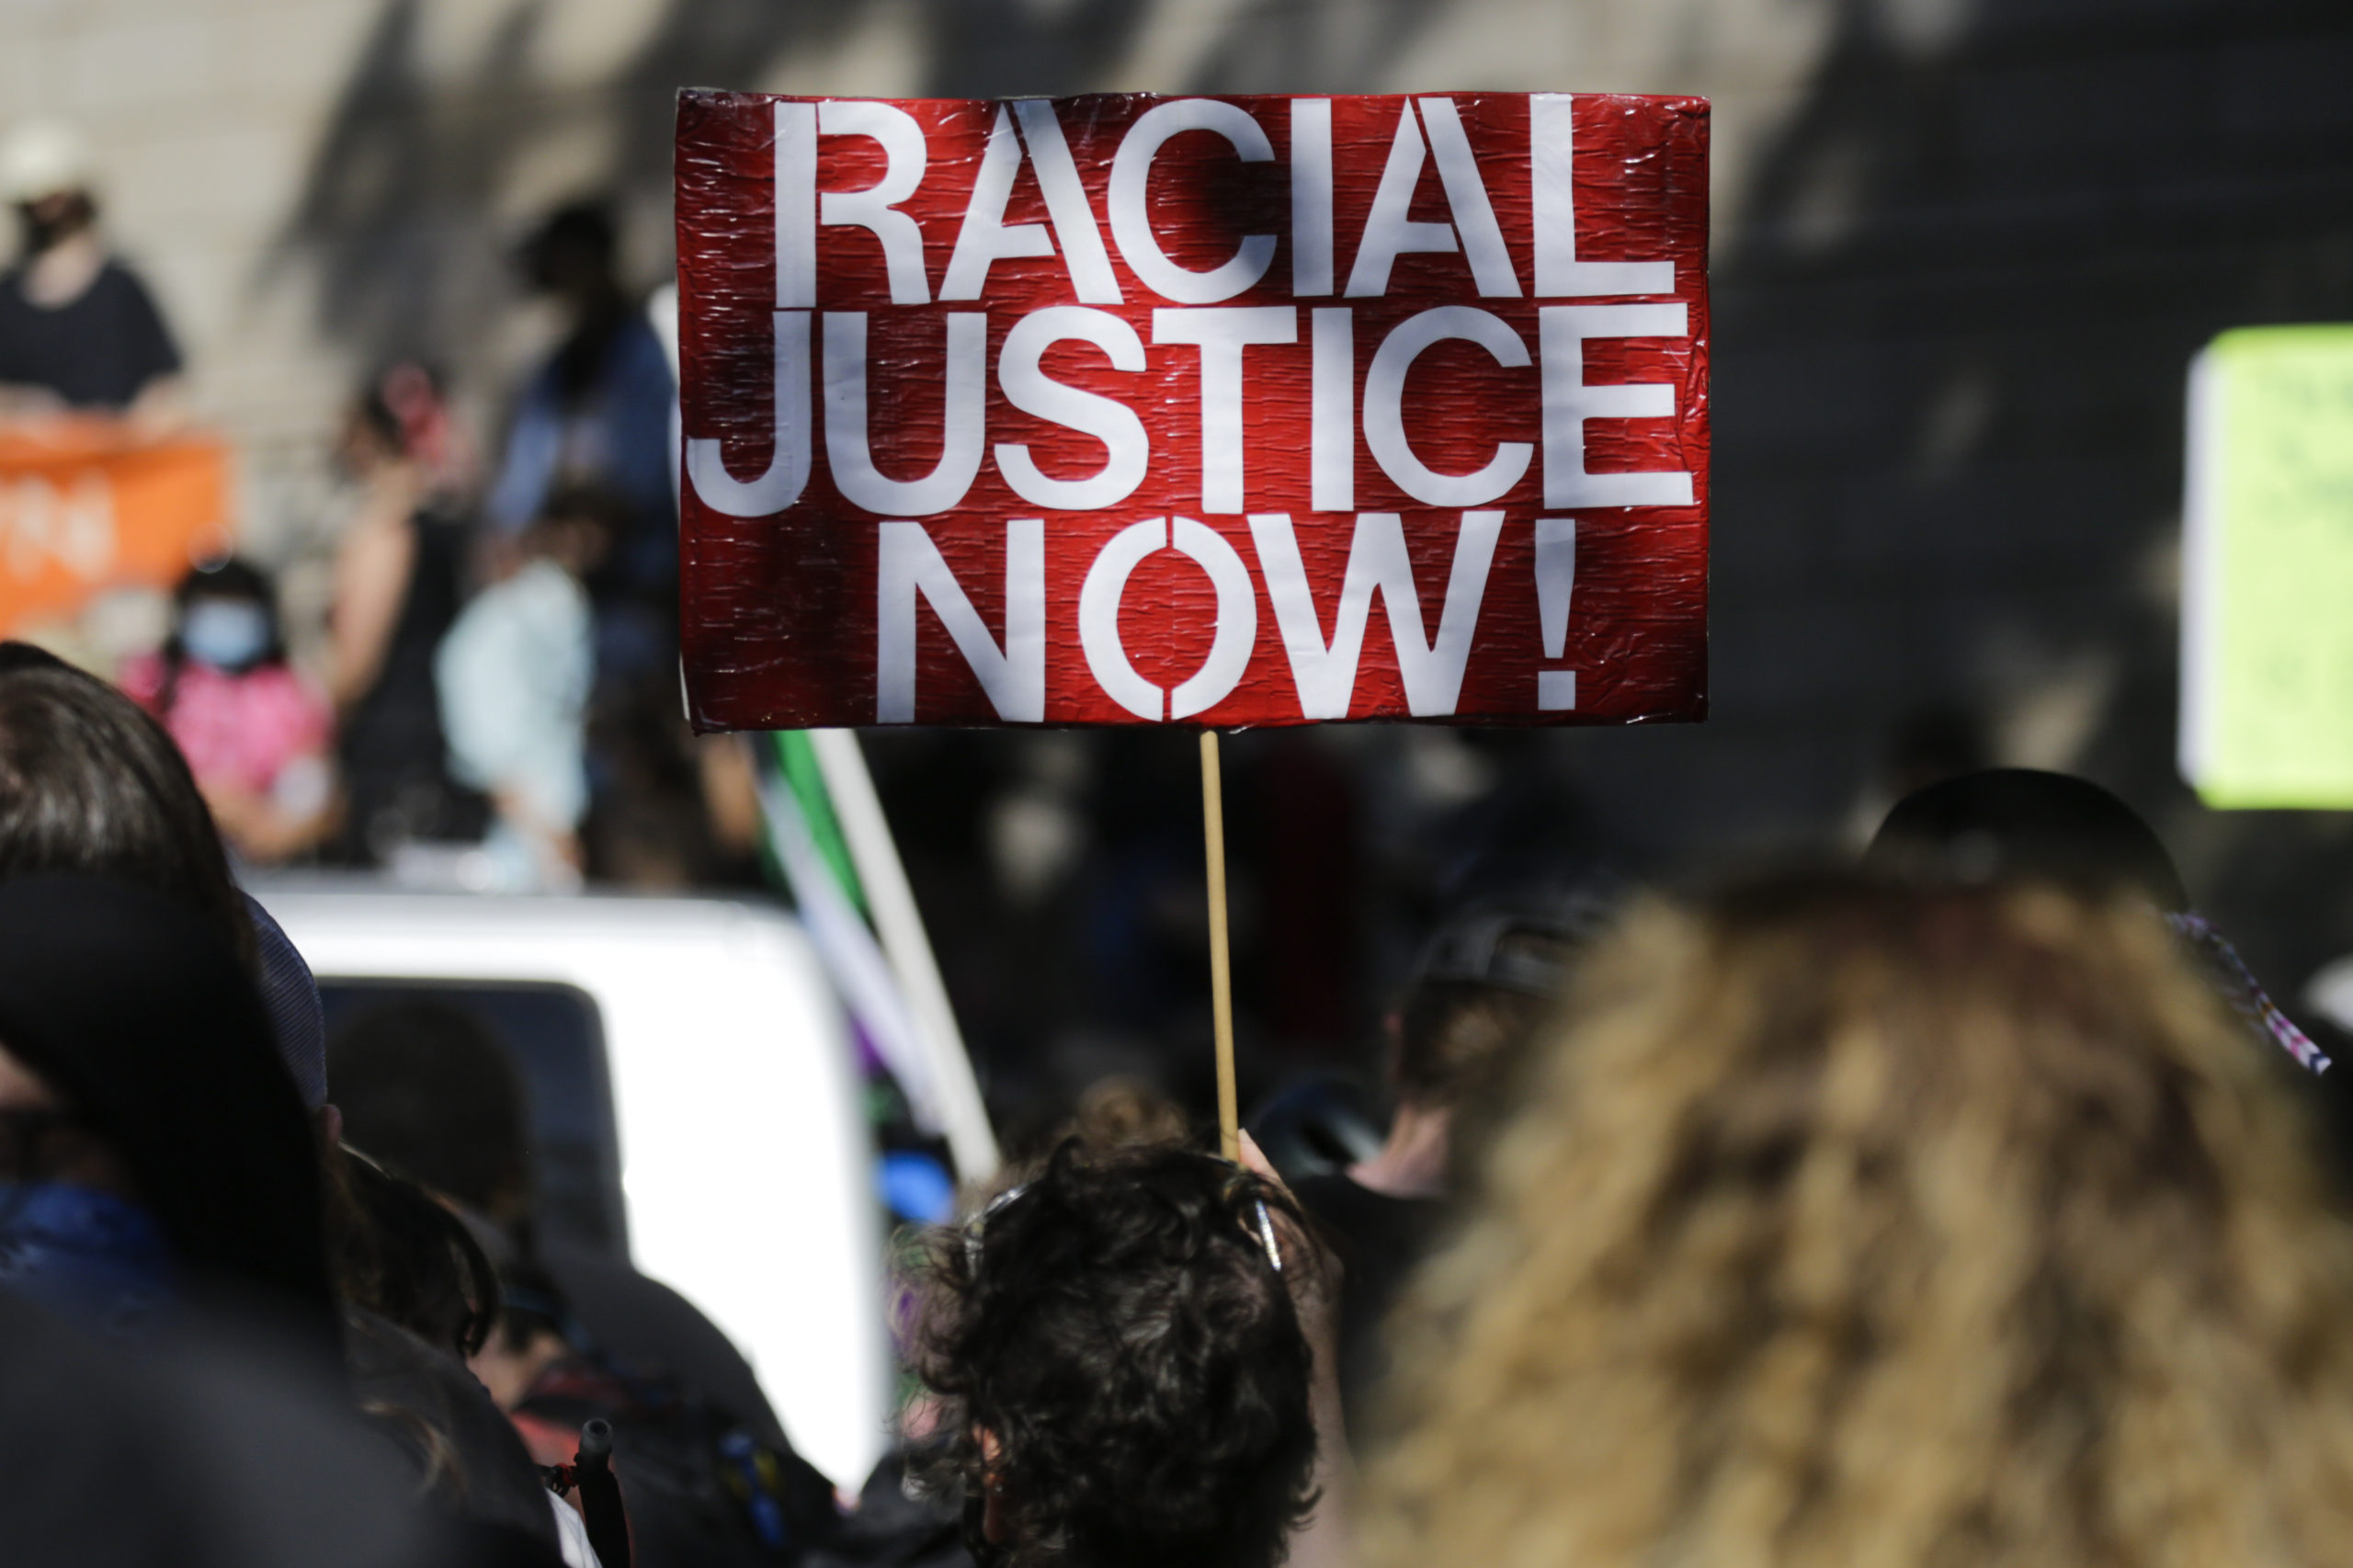 """A protestor holds a """"Racial Justice Now"""" sign during a """"Defund the Police"""" march from King County Youth Jail to City Hall in Seattle, Washington on August 5, 2020. (Photo by Jason Redmond / AFP) (Photo by JASON REDMOND/AFP via Getty Images)"""